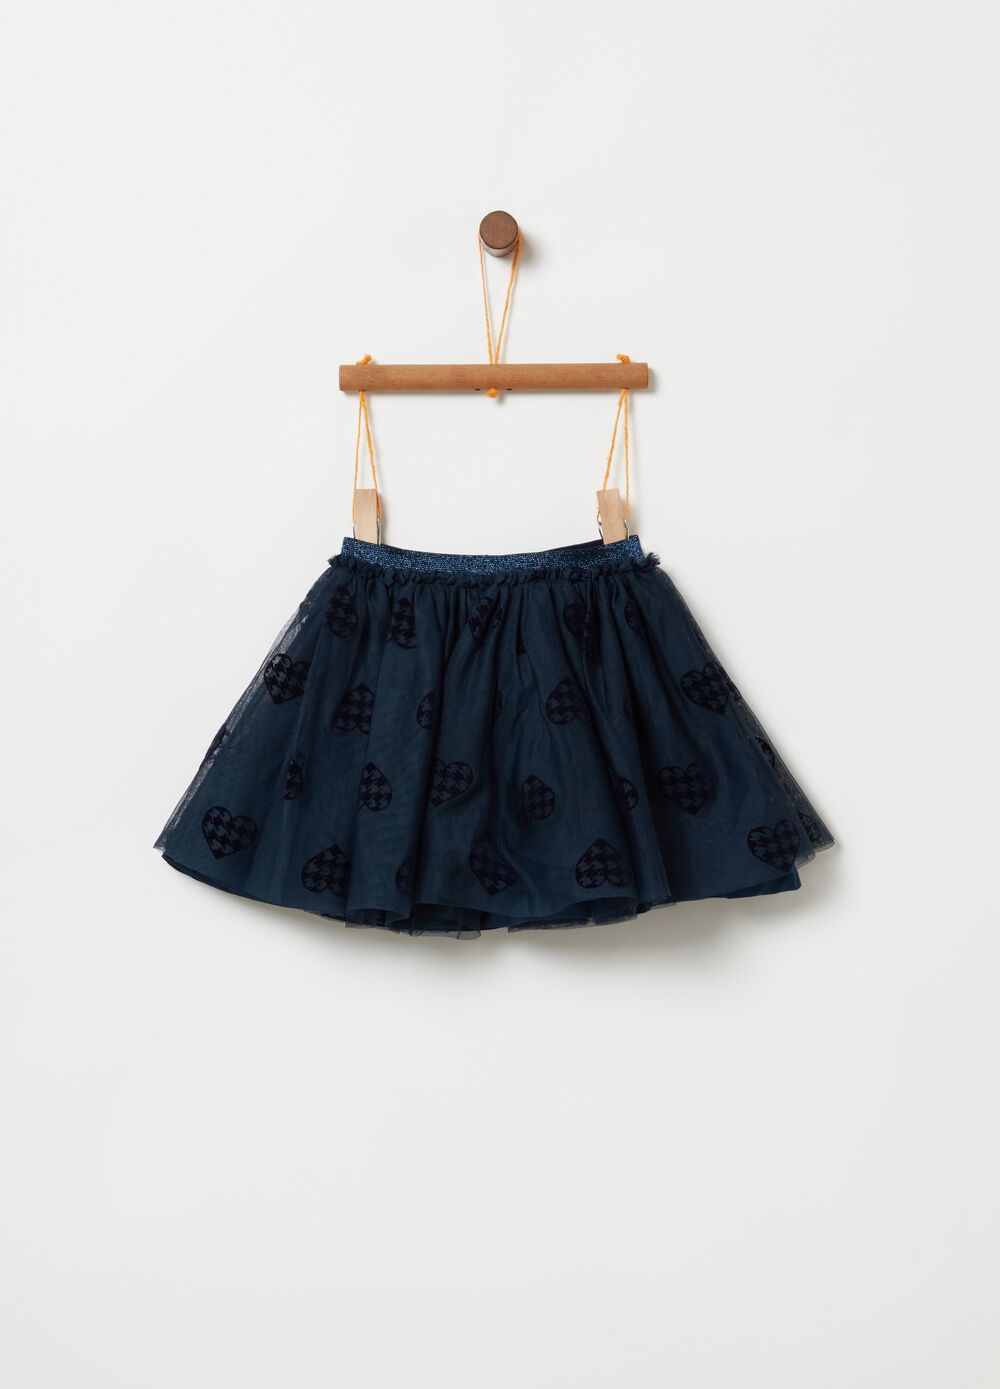 Pleated skirt with heart patterned tulle